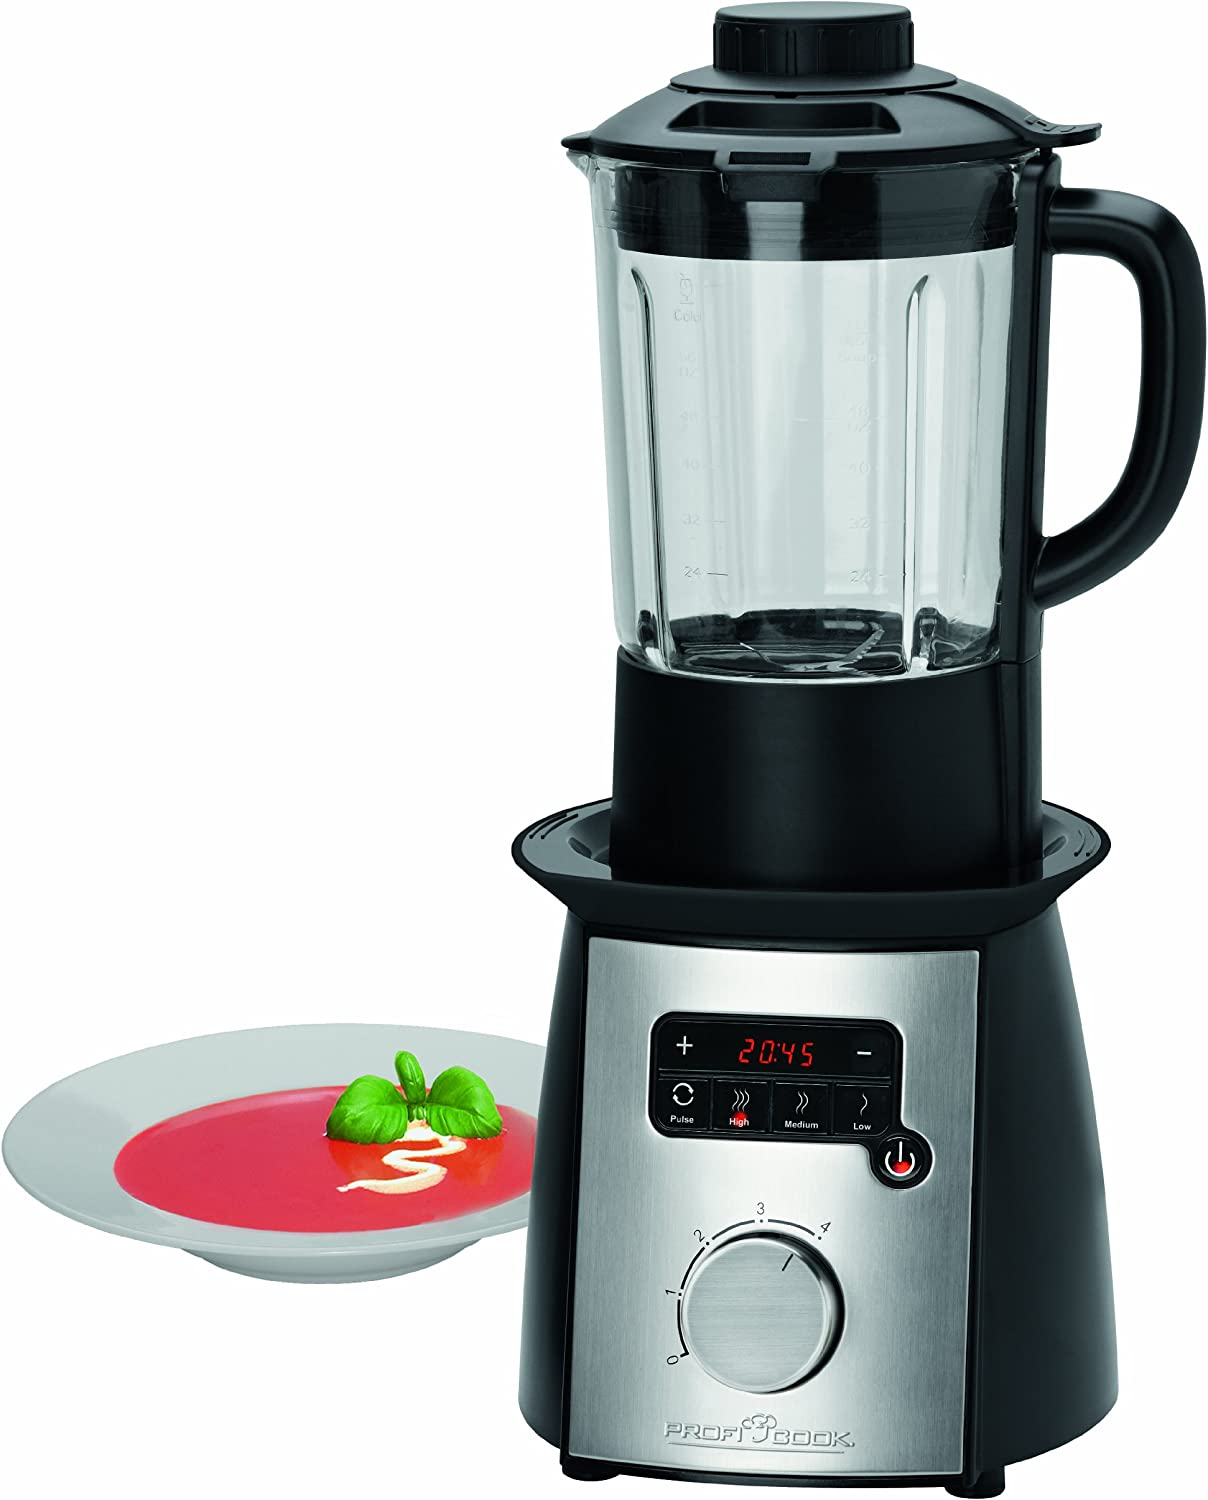 Profi Cook PC-MCM 1024 Multi Cook - Batidora de vaso: Amazon.es: Hogar